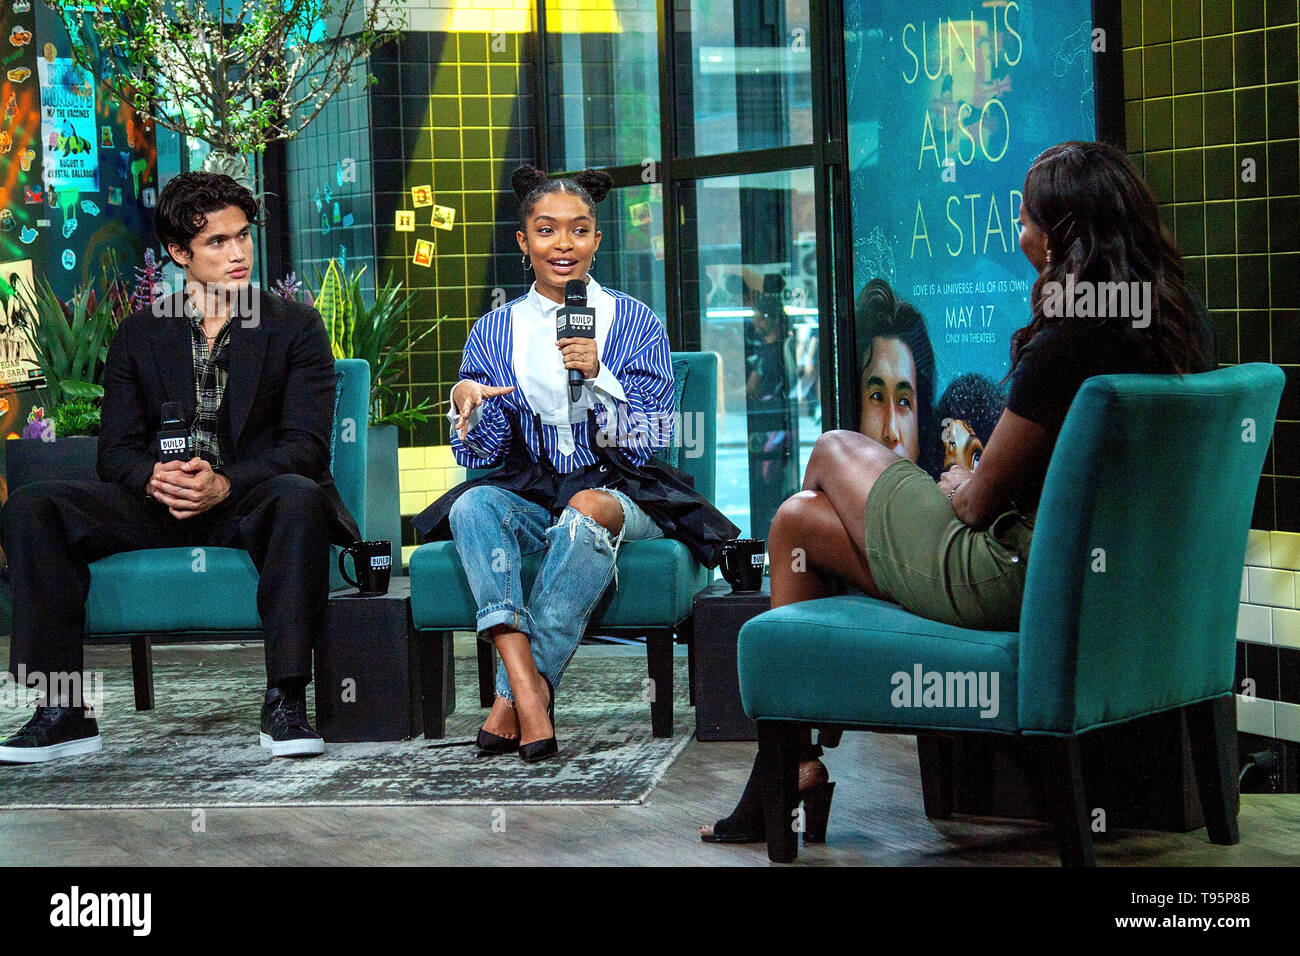 New York, USA. 16 May, 2019. Charles Melton, Yara Shahidi at the BUILD Series with Charles Melton and Yara Shahidi, discussing the new film 'The Sun Is Also a Star' at BUILD Studio. Credit: Steve Mack/Alamy Live News - Stock Image